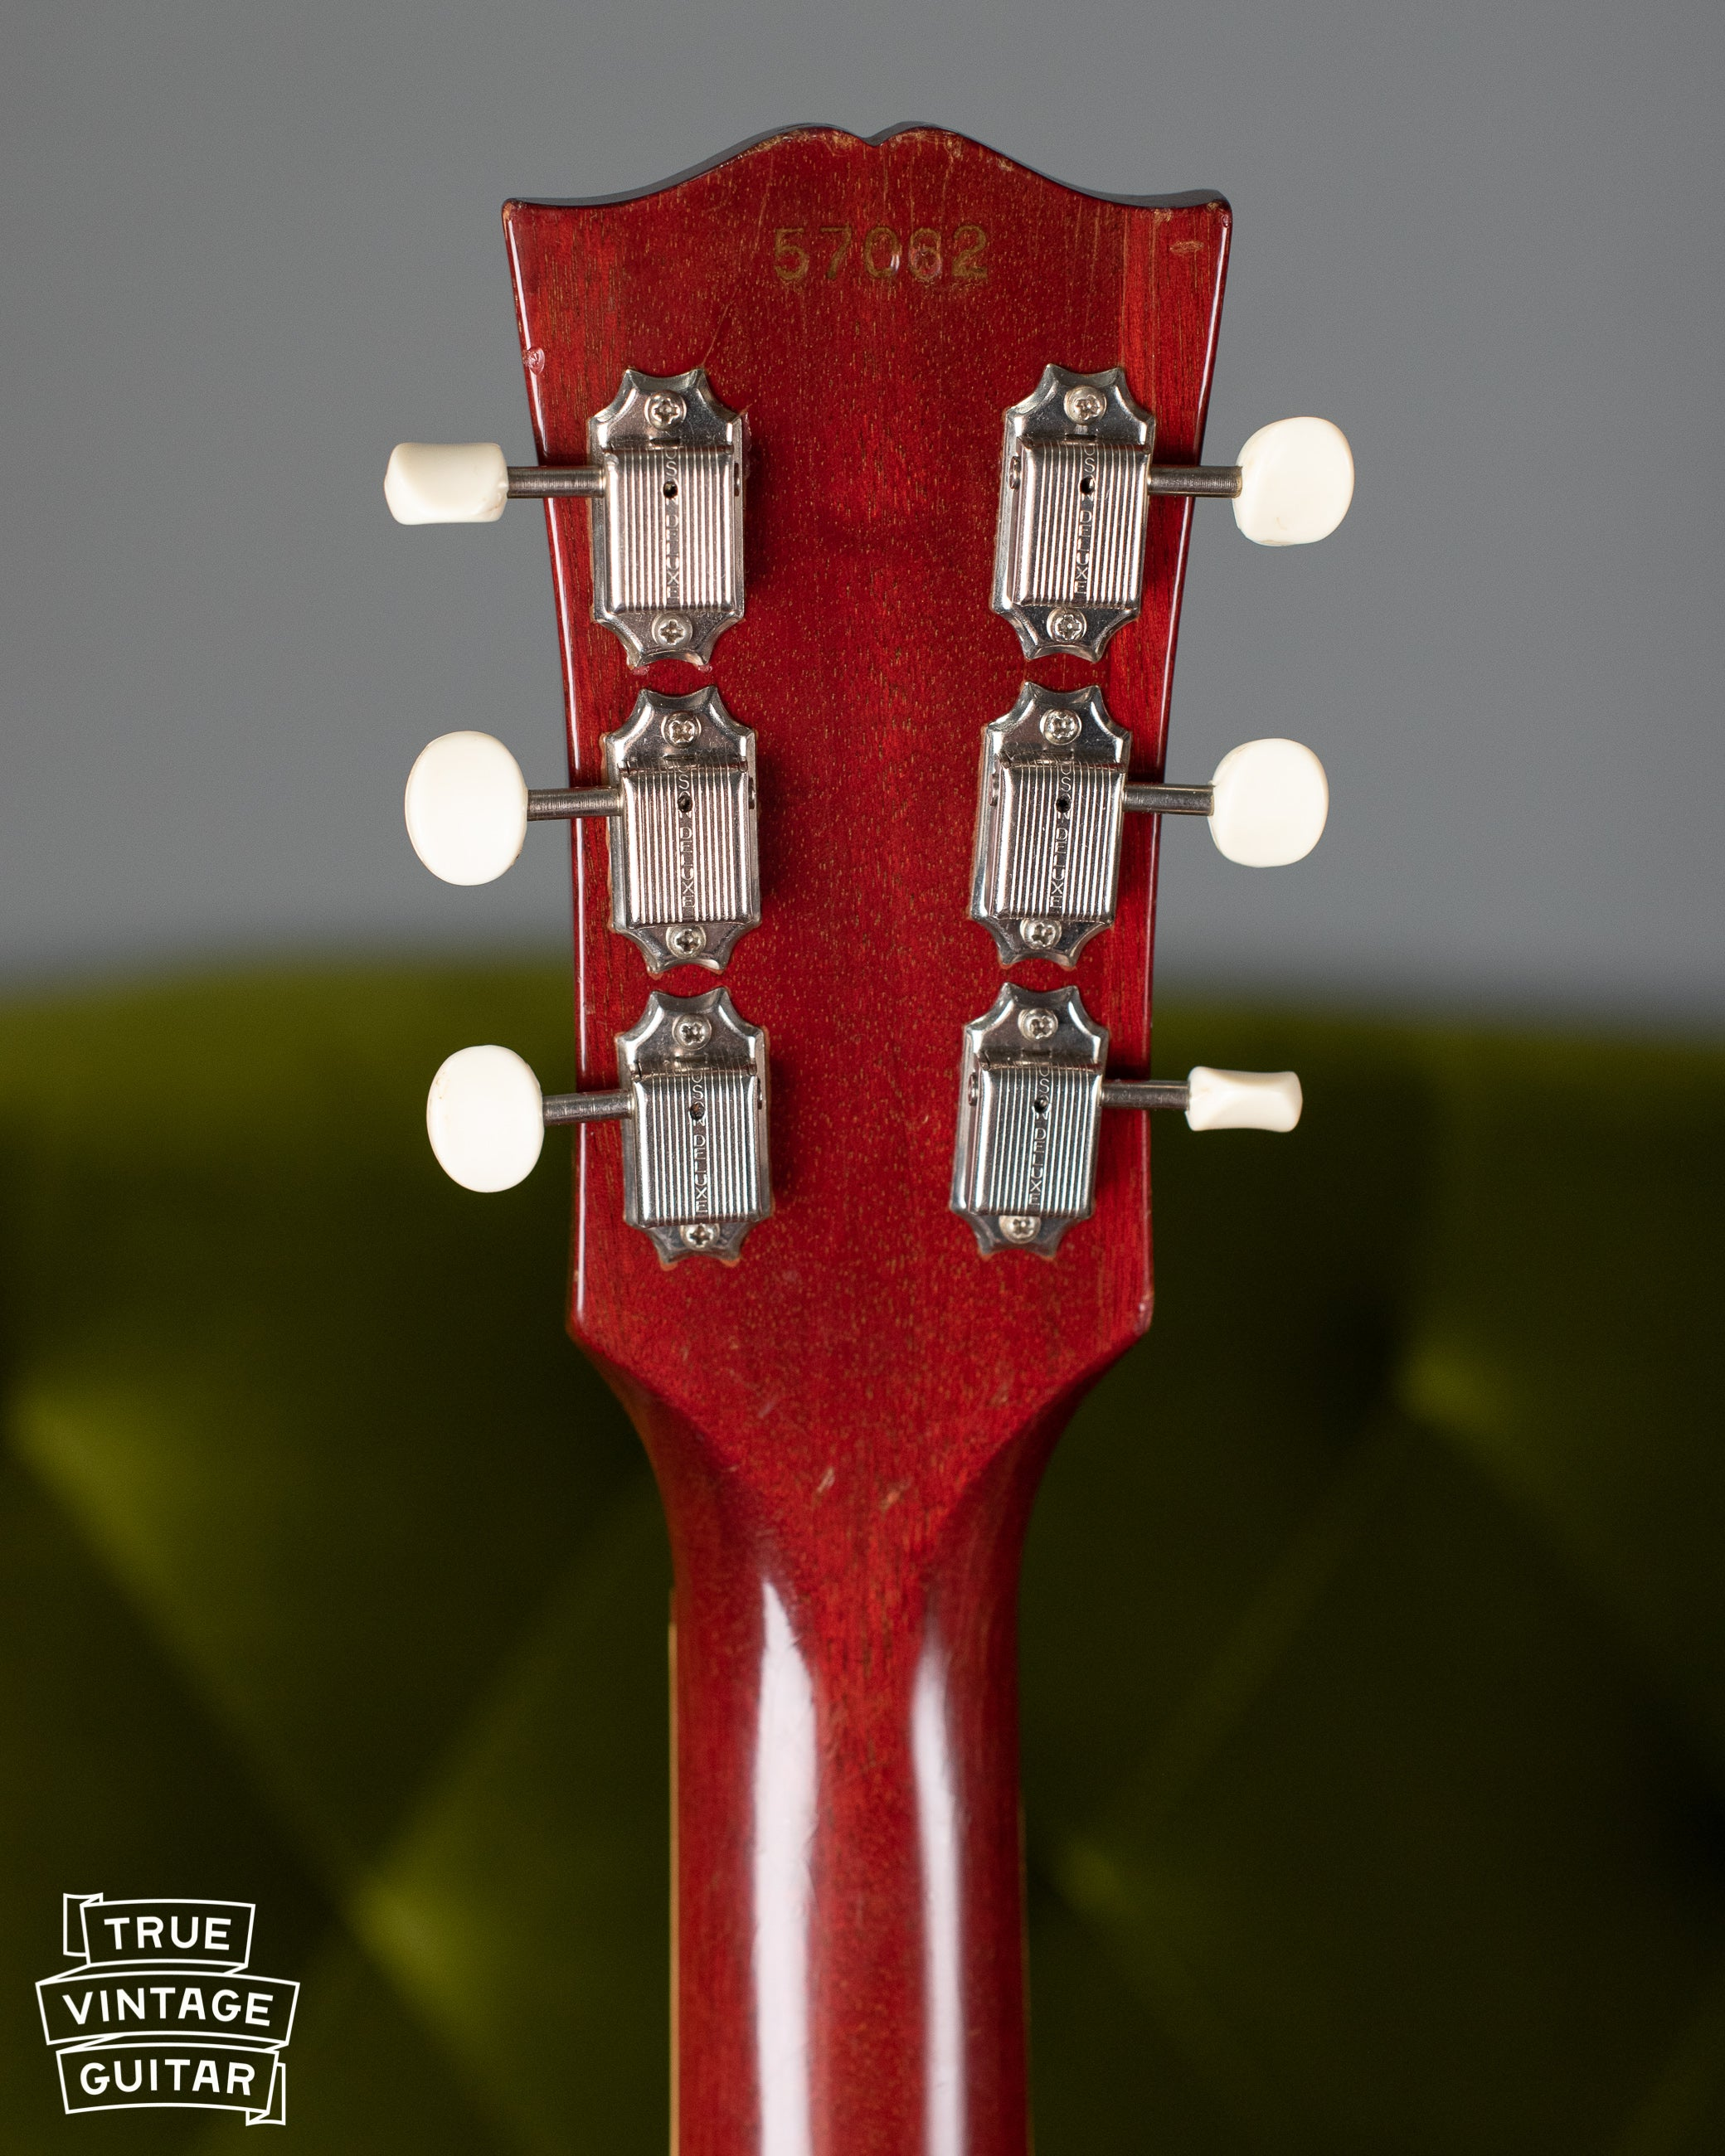 Sell 1960s Gibson guitar